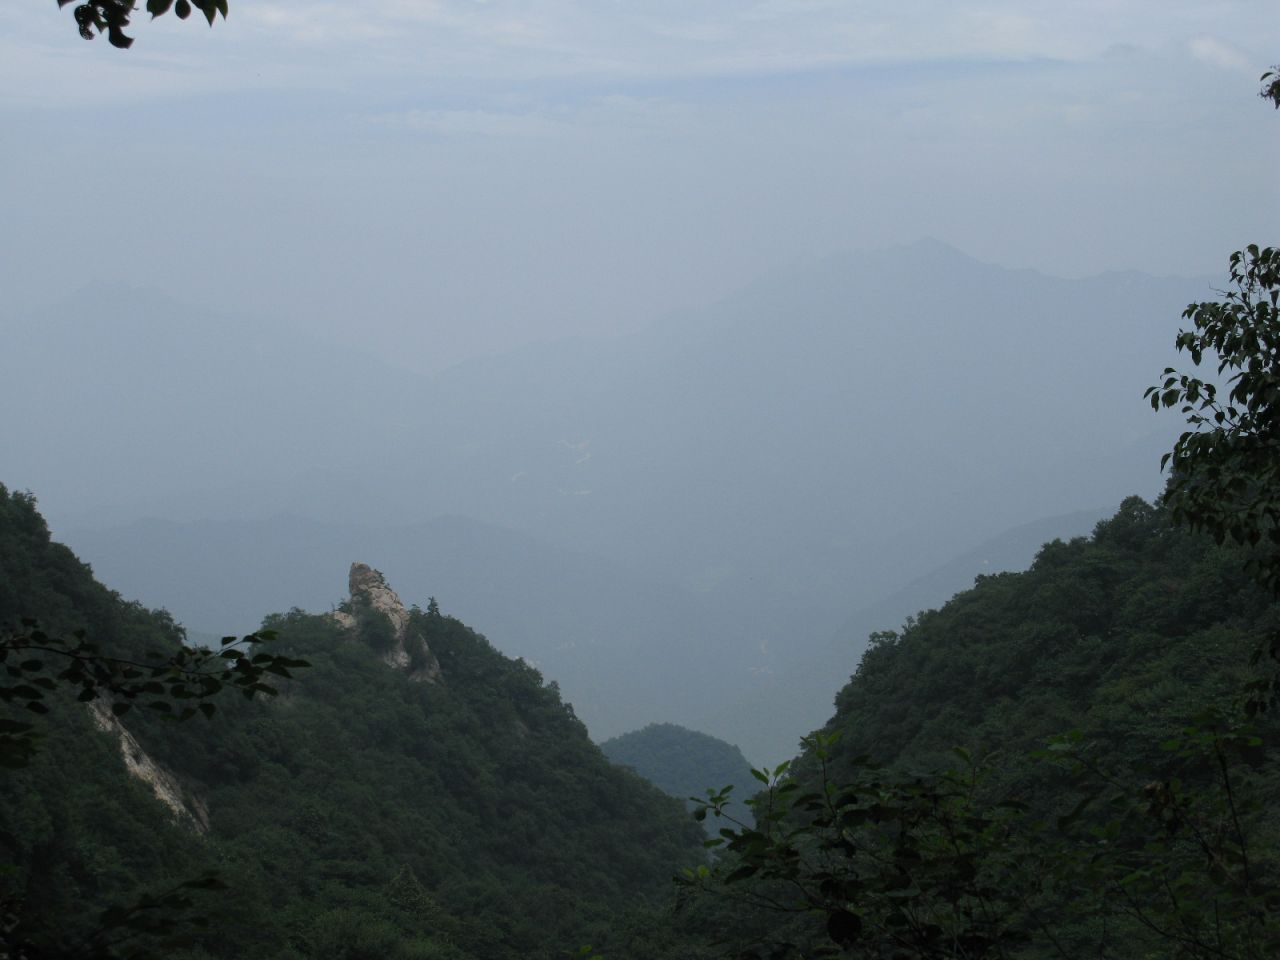 Qin Ling Mountains.